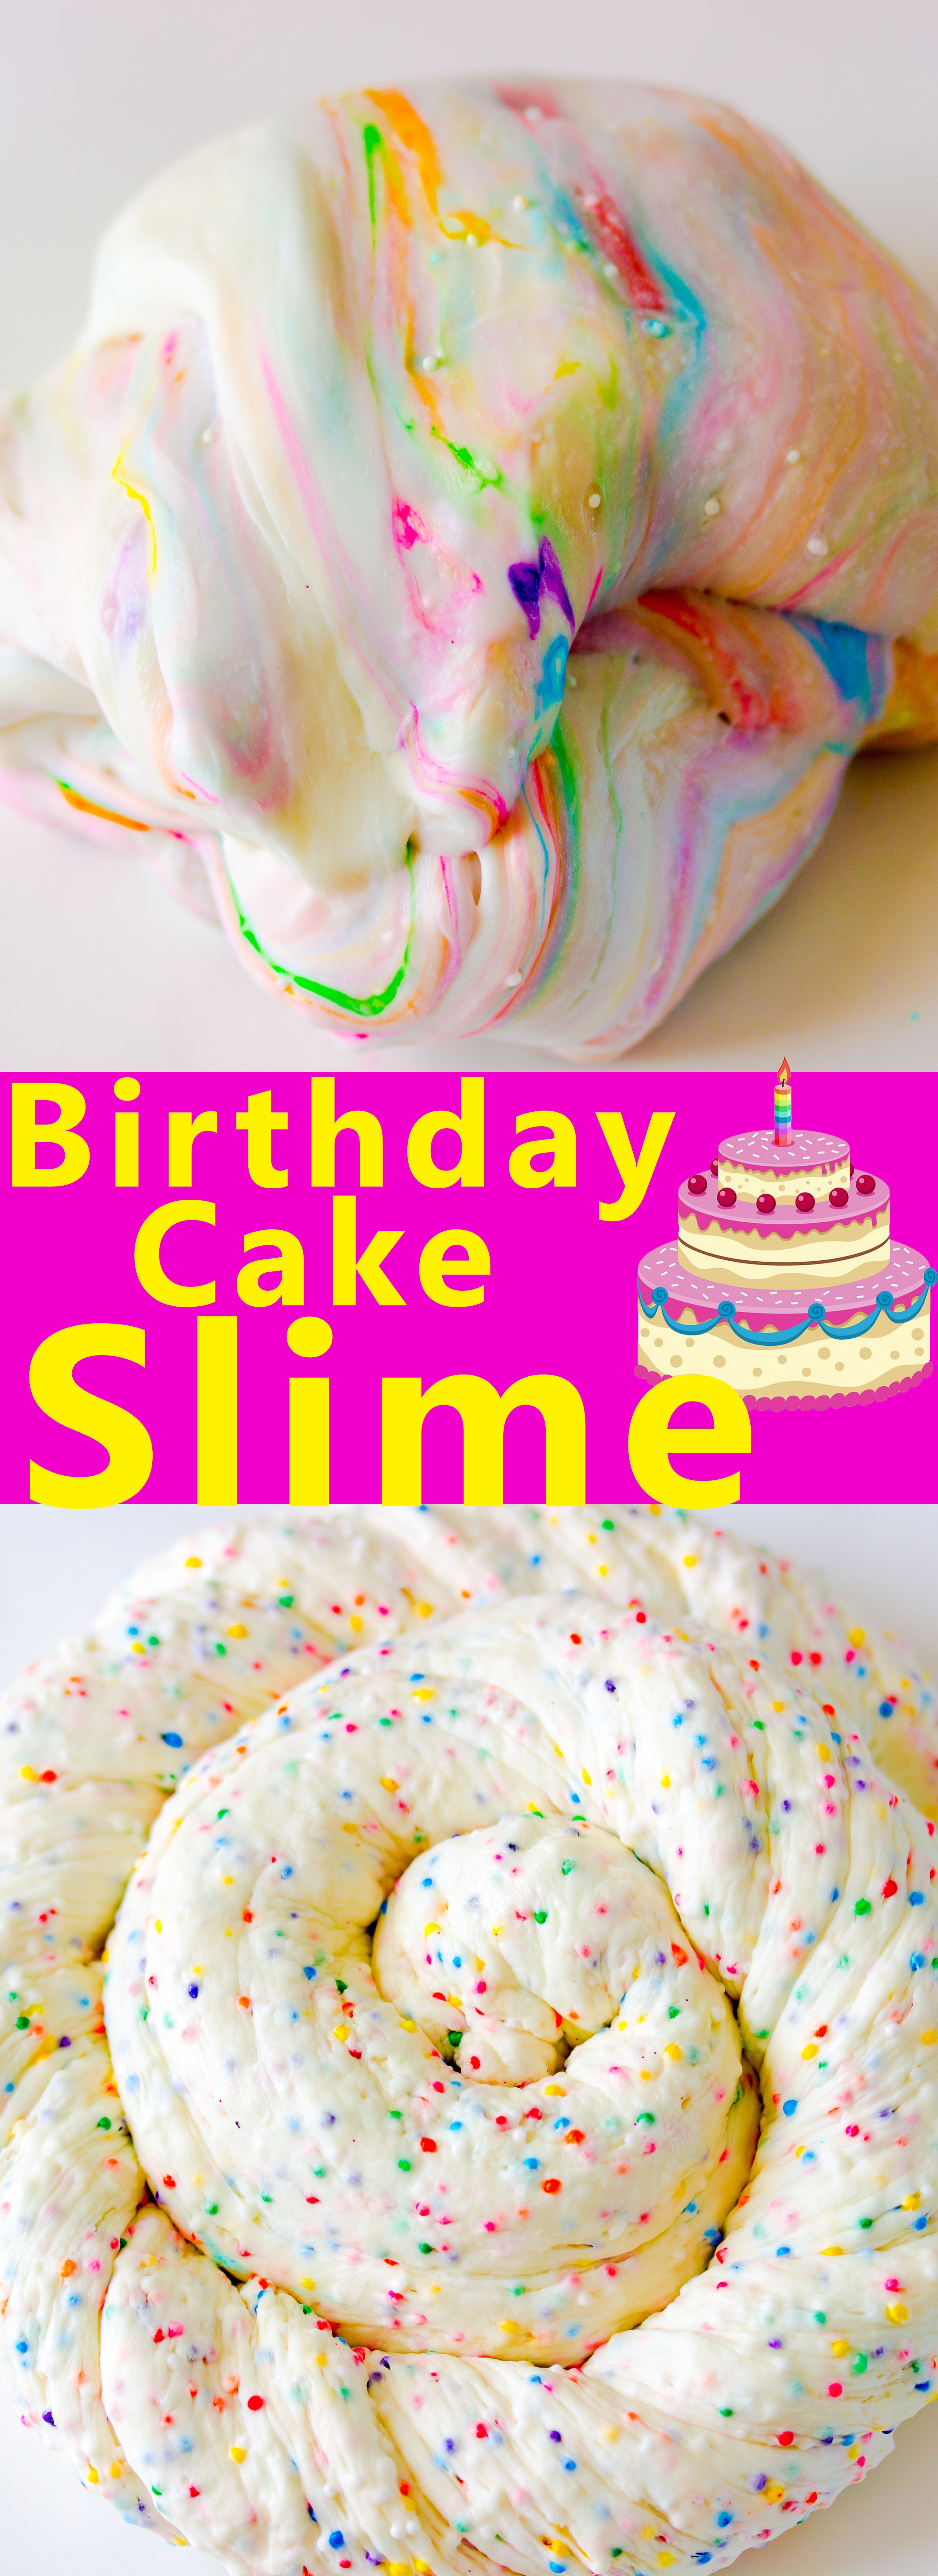 Make This Easy Birthday Cake Slime With Lovely Notes Of Vanilla